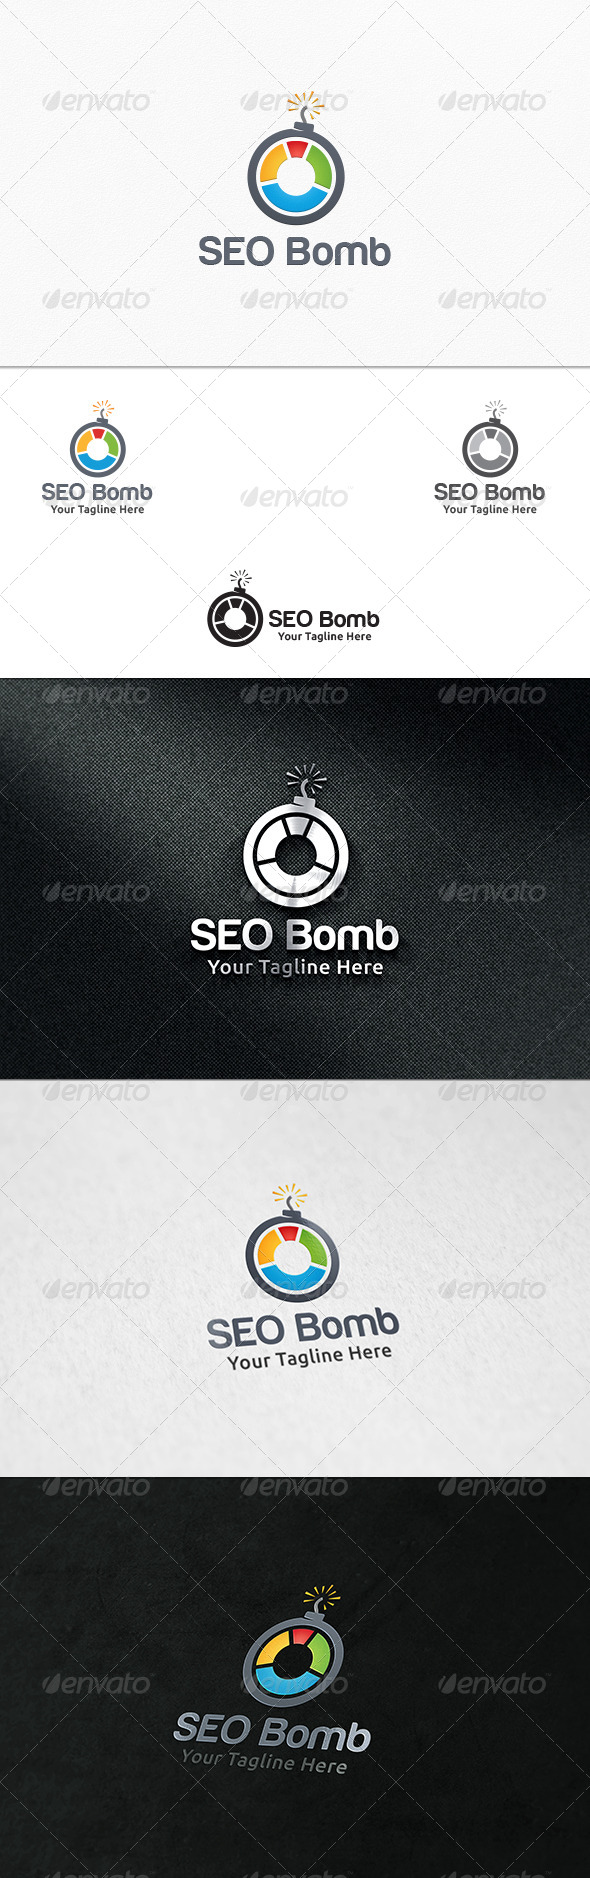 GraphicRiver SEO Bomb Logo Template 7371053